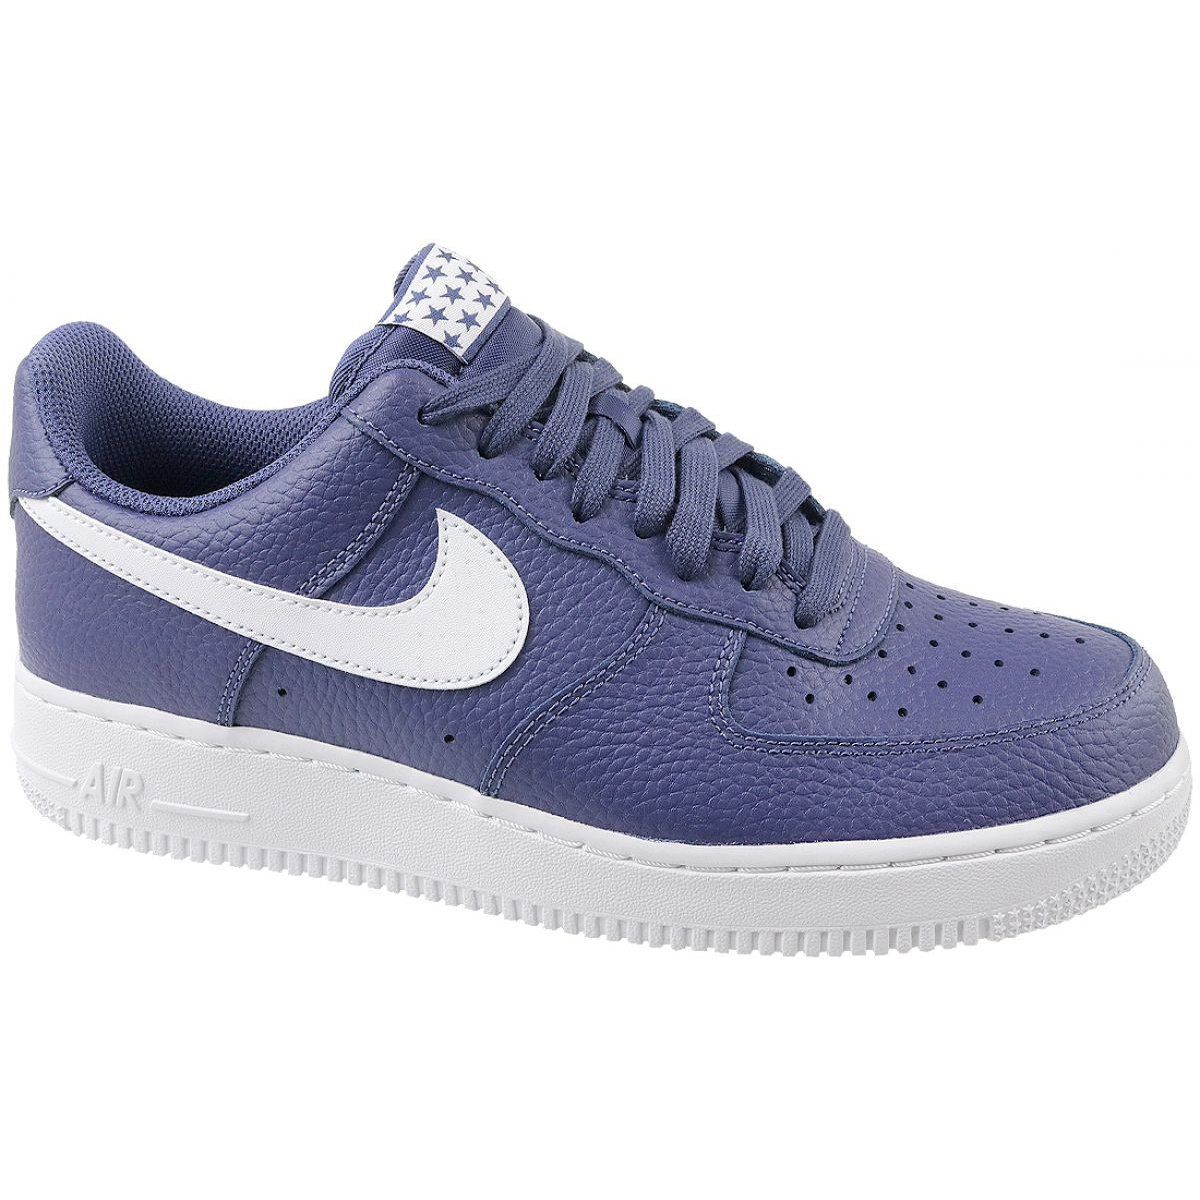 Details about Nike Air Force 1 07 M AA4083 401 shoes violet